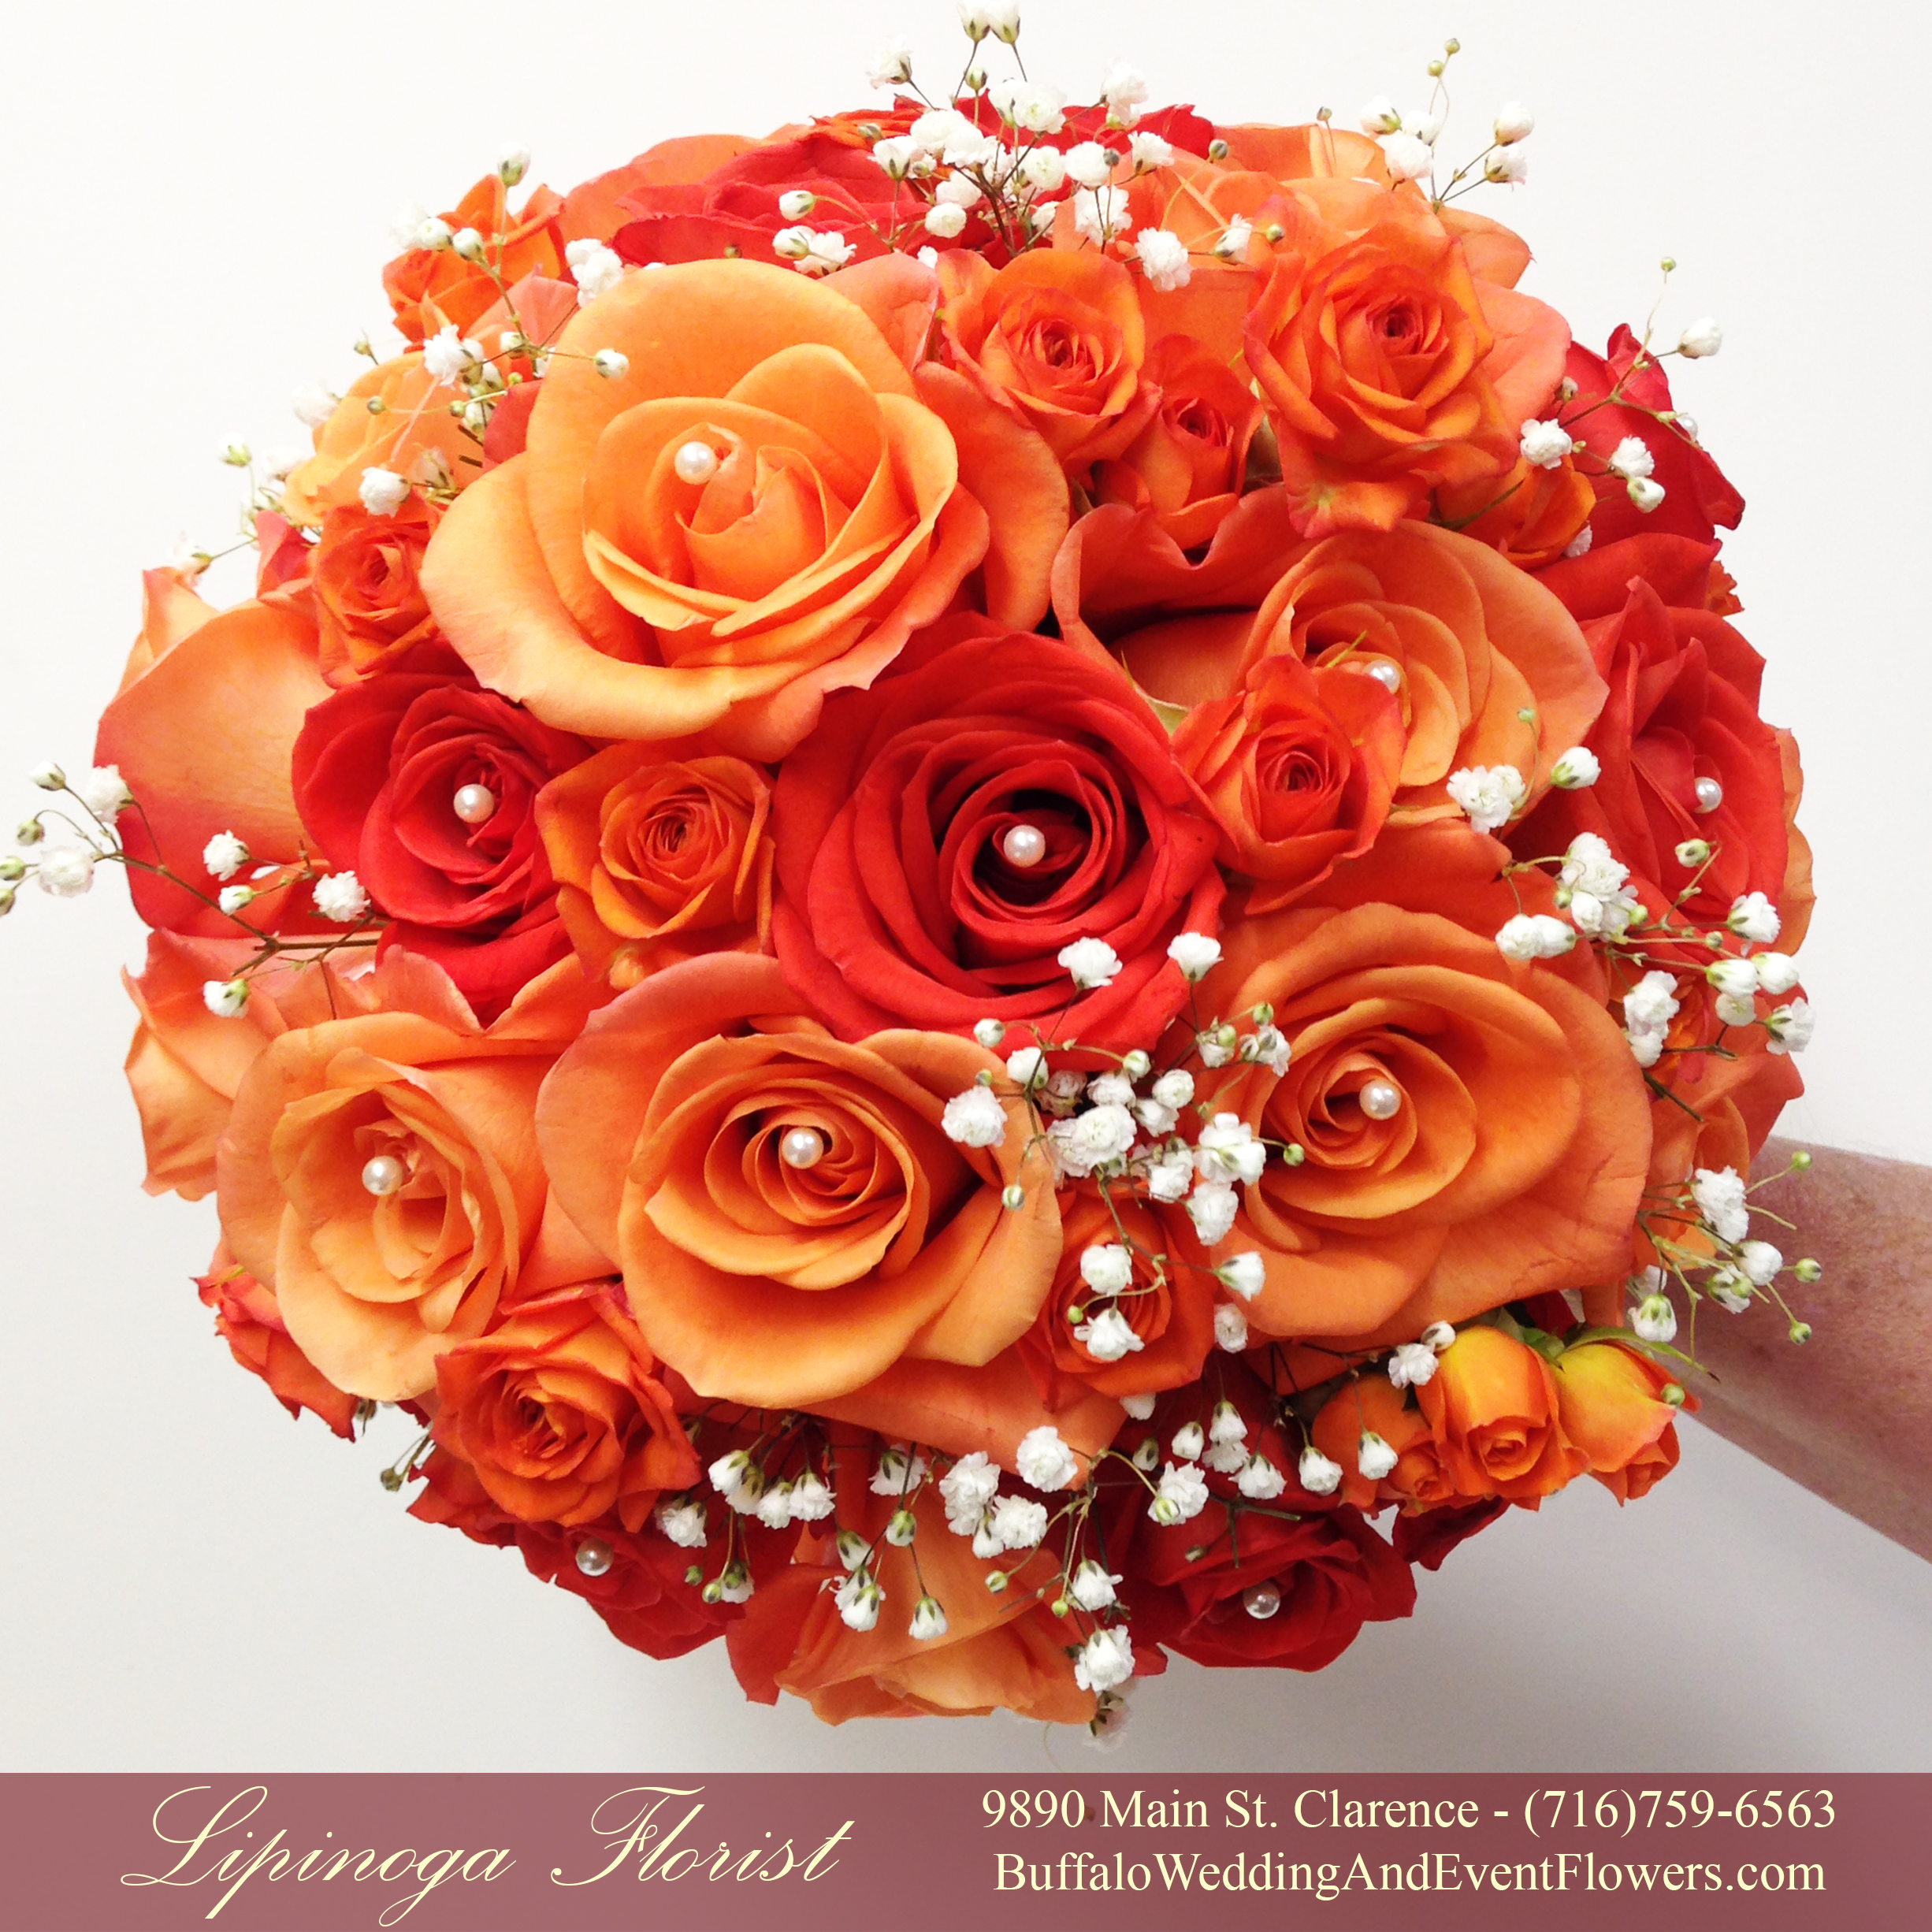 Orange wedding flowers buffalo wedding event flowers by lipinoga orange bridal bouquet by lipinoga florist buffalo wedding flower specialists 3 izmirmasajfo